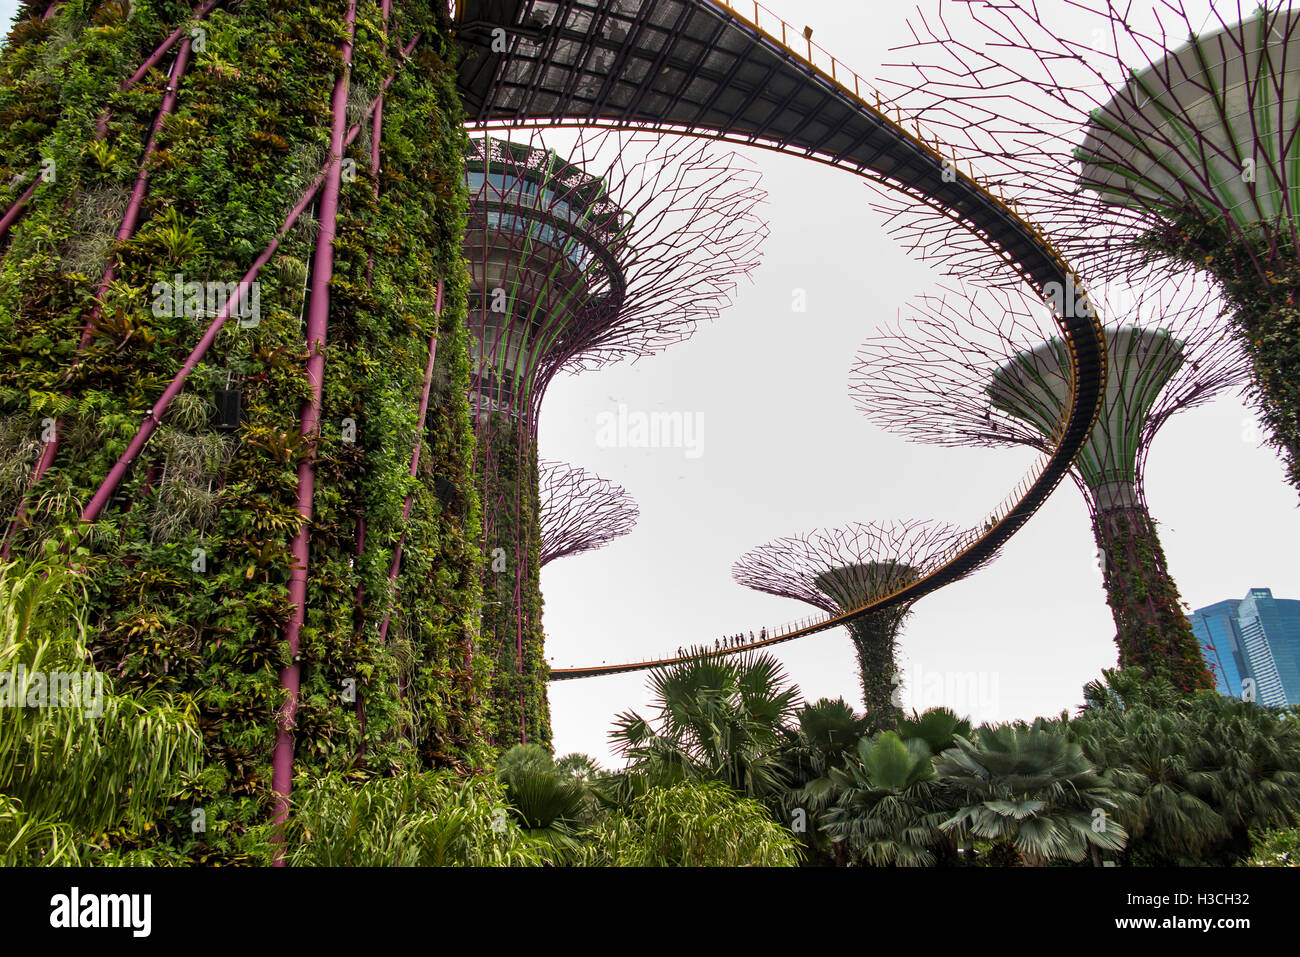 Singapore, Gardens by the Bay, Supertree Grove, OCBC skyway elevated walk Stock Photo